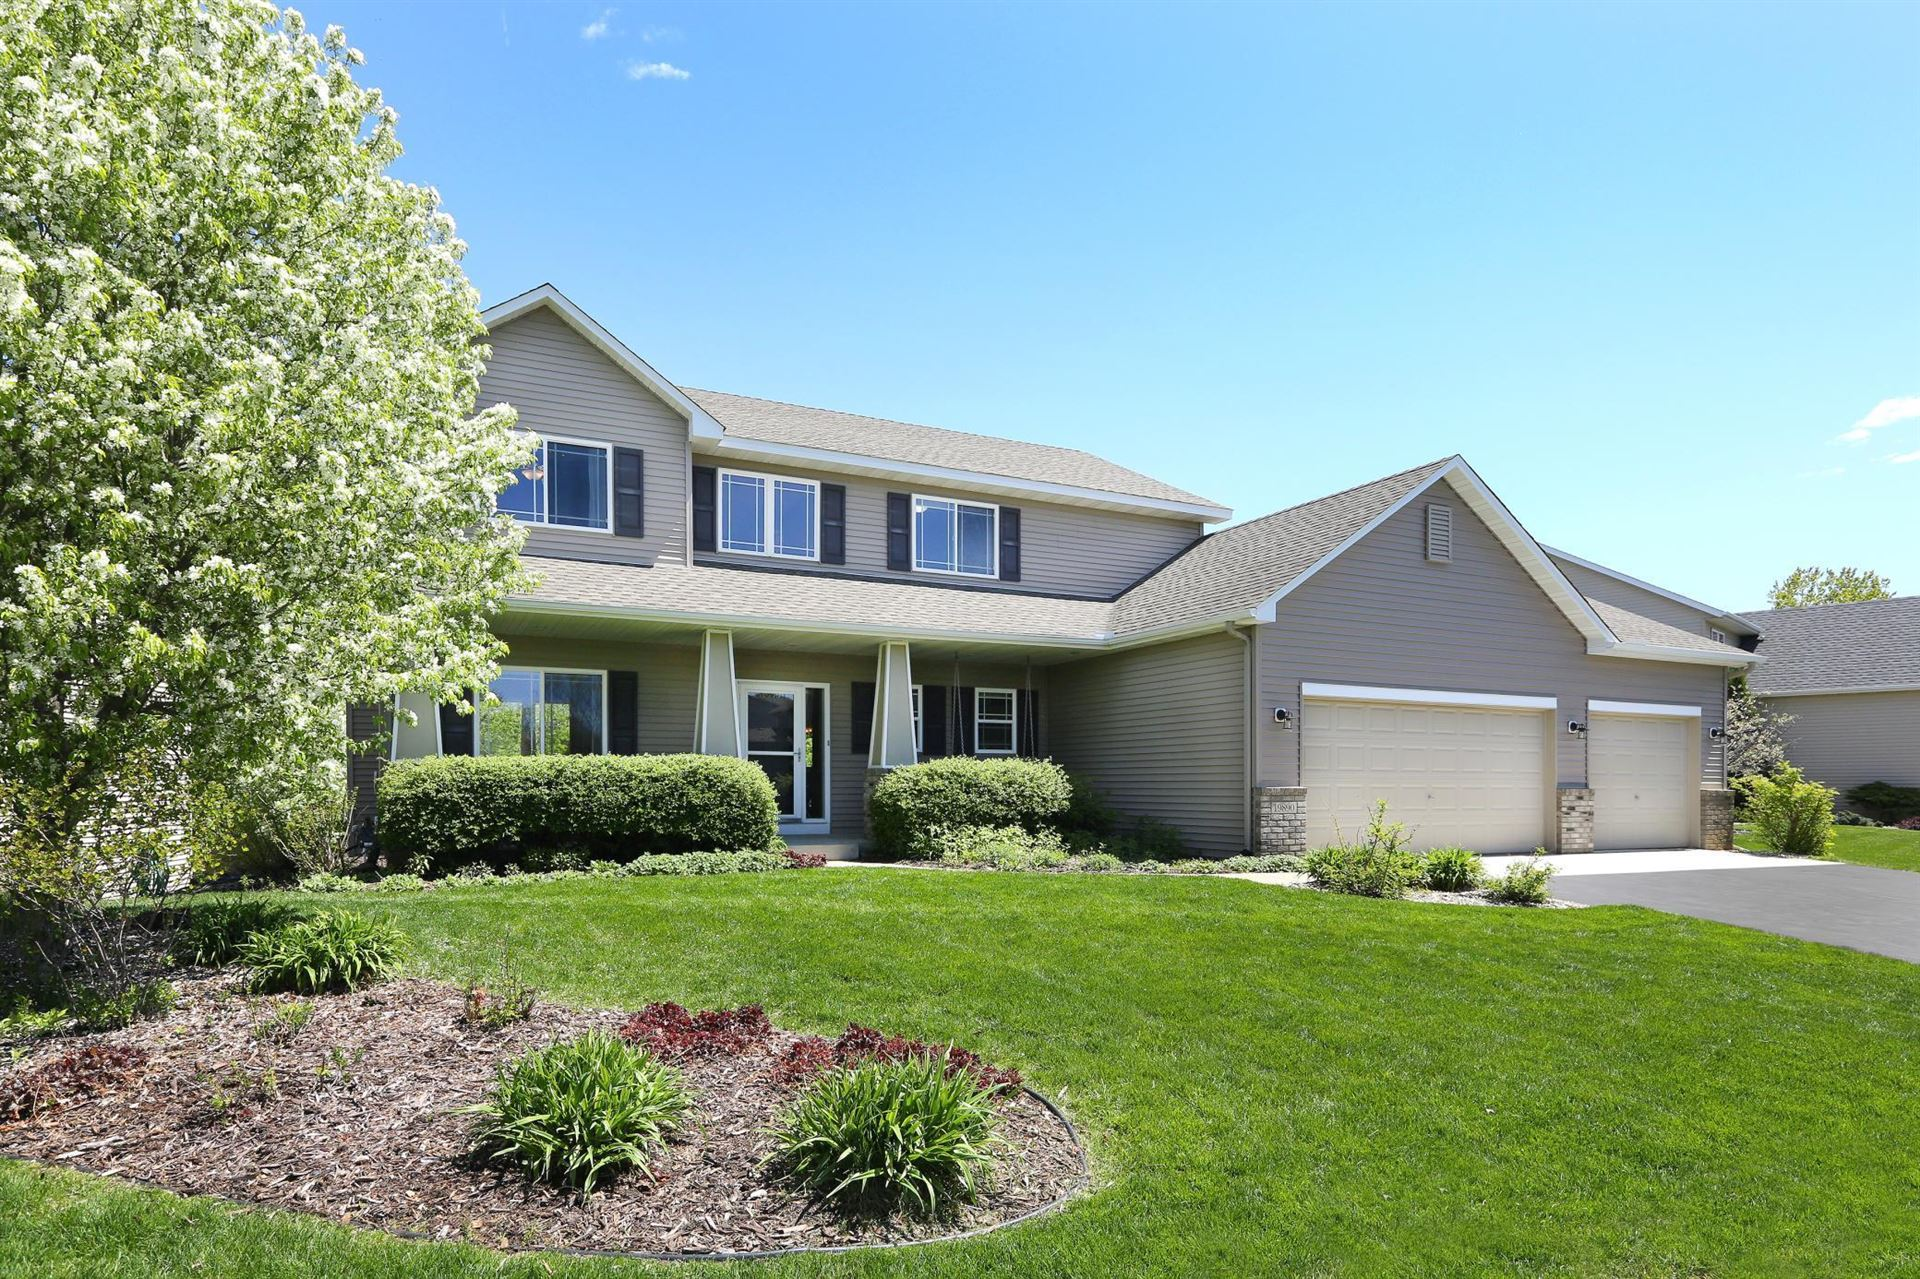 Photo of 19890 English Avenue, Farmington, MN 55024 (MLS # 5756765)